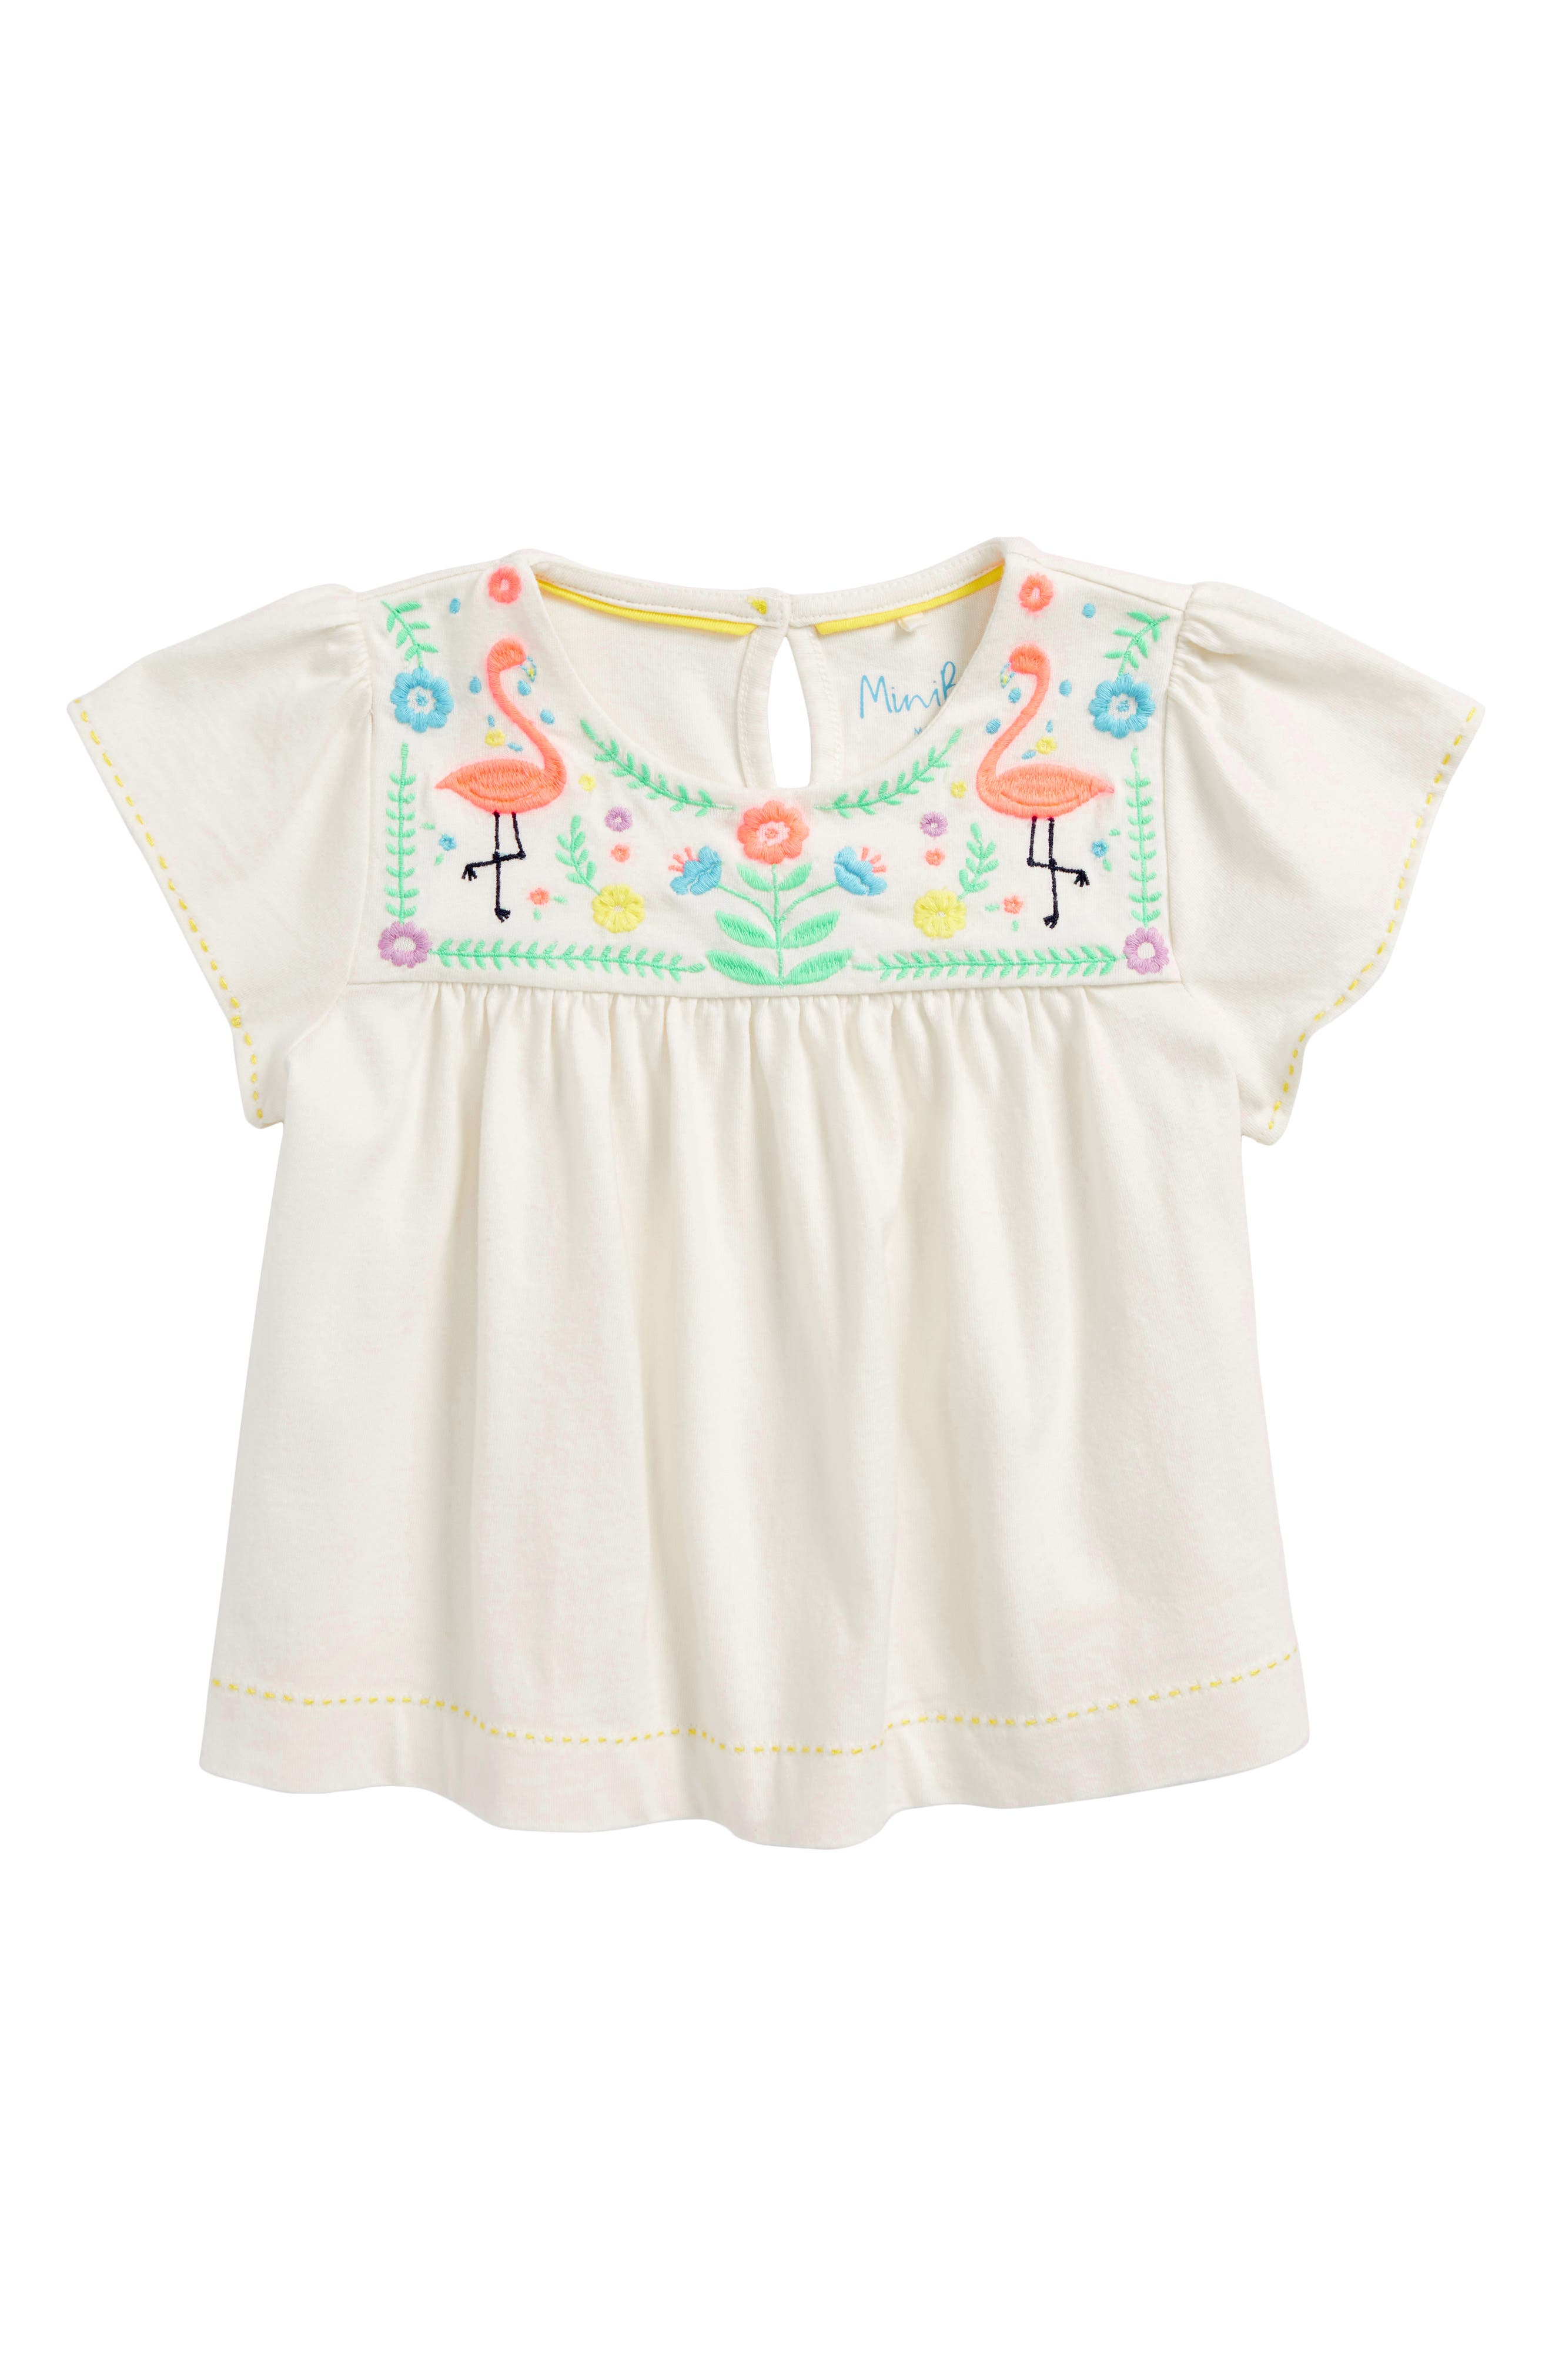 Embroidered Joke Top,                         Main,                         color, 904